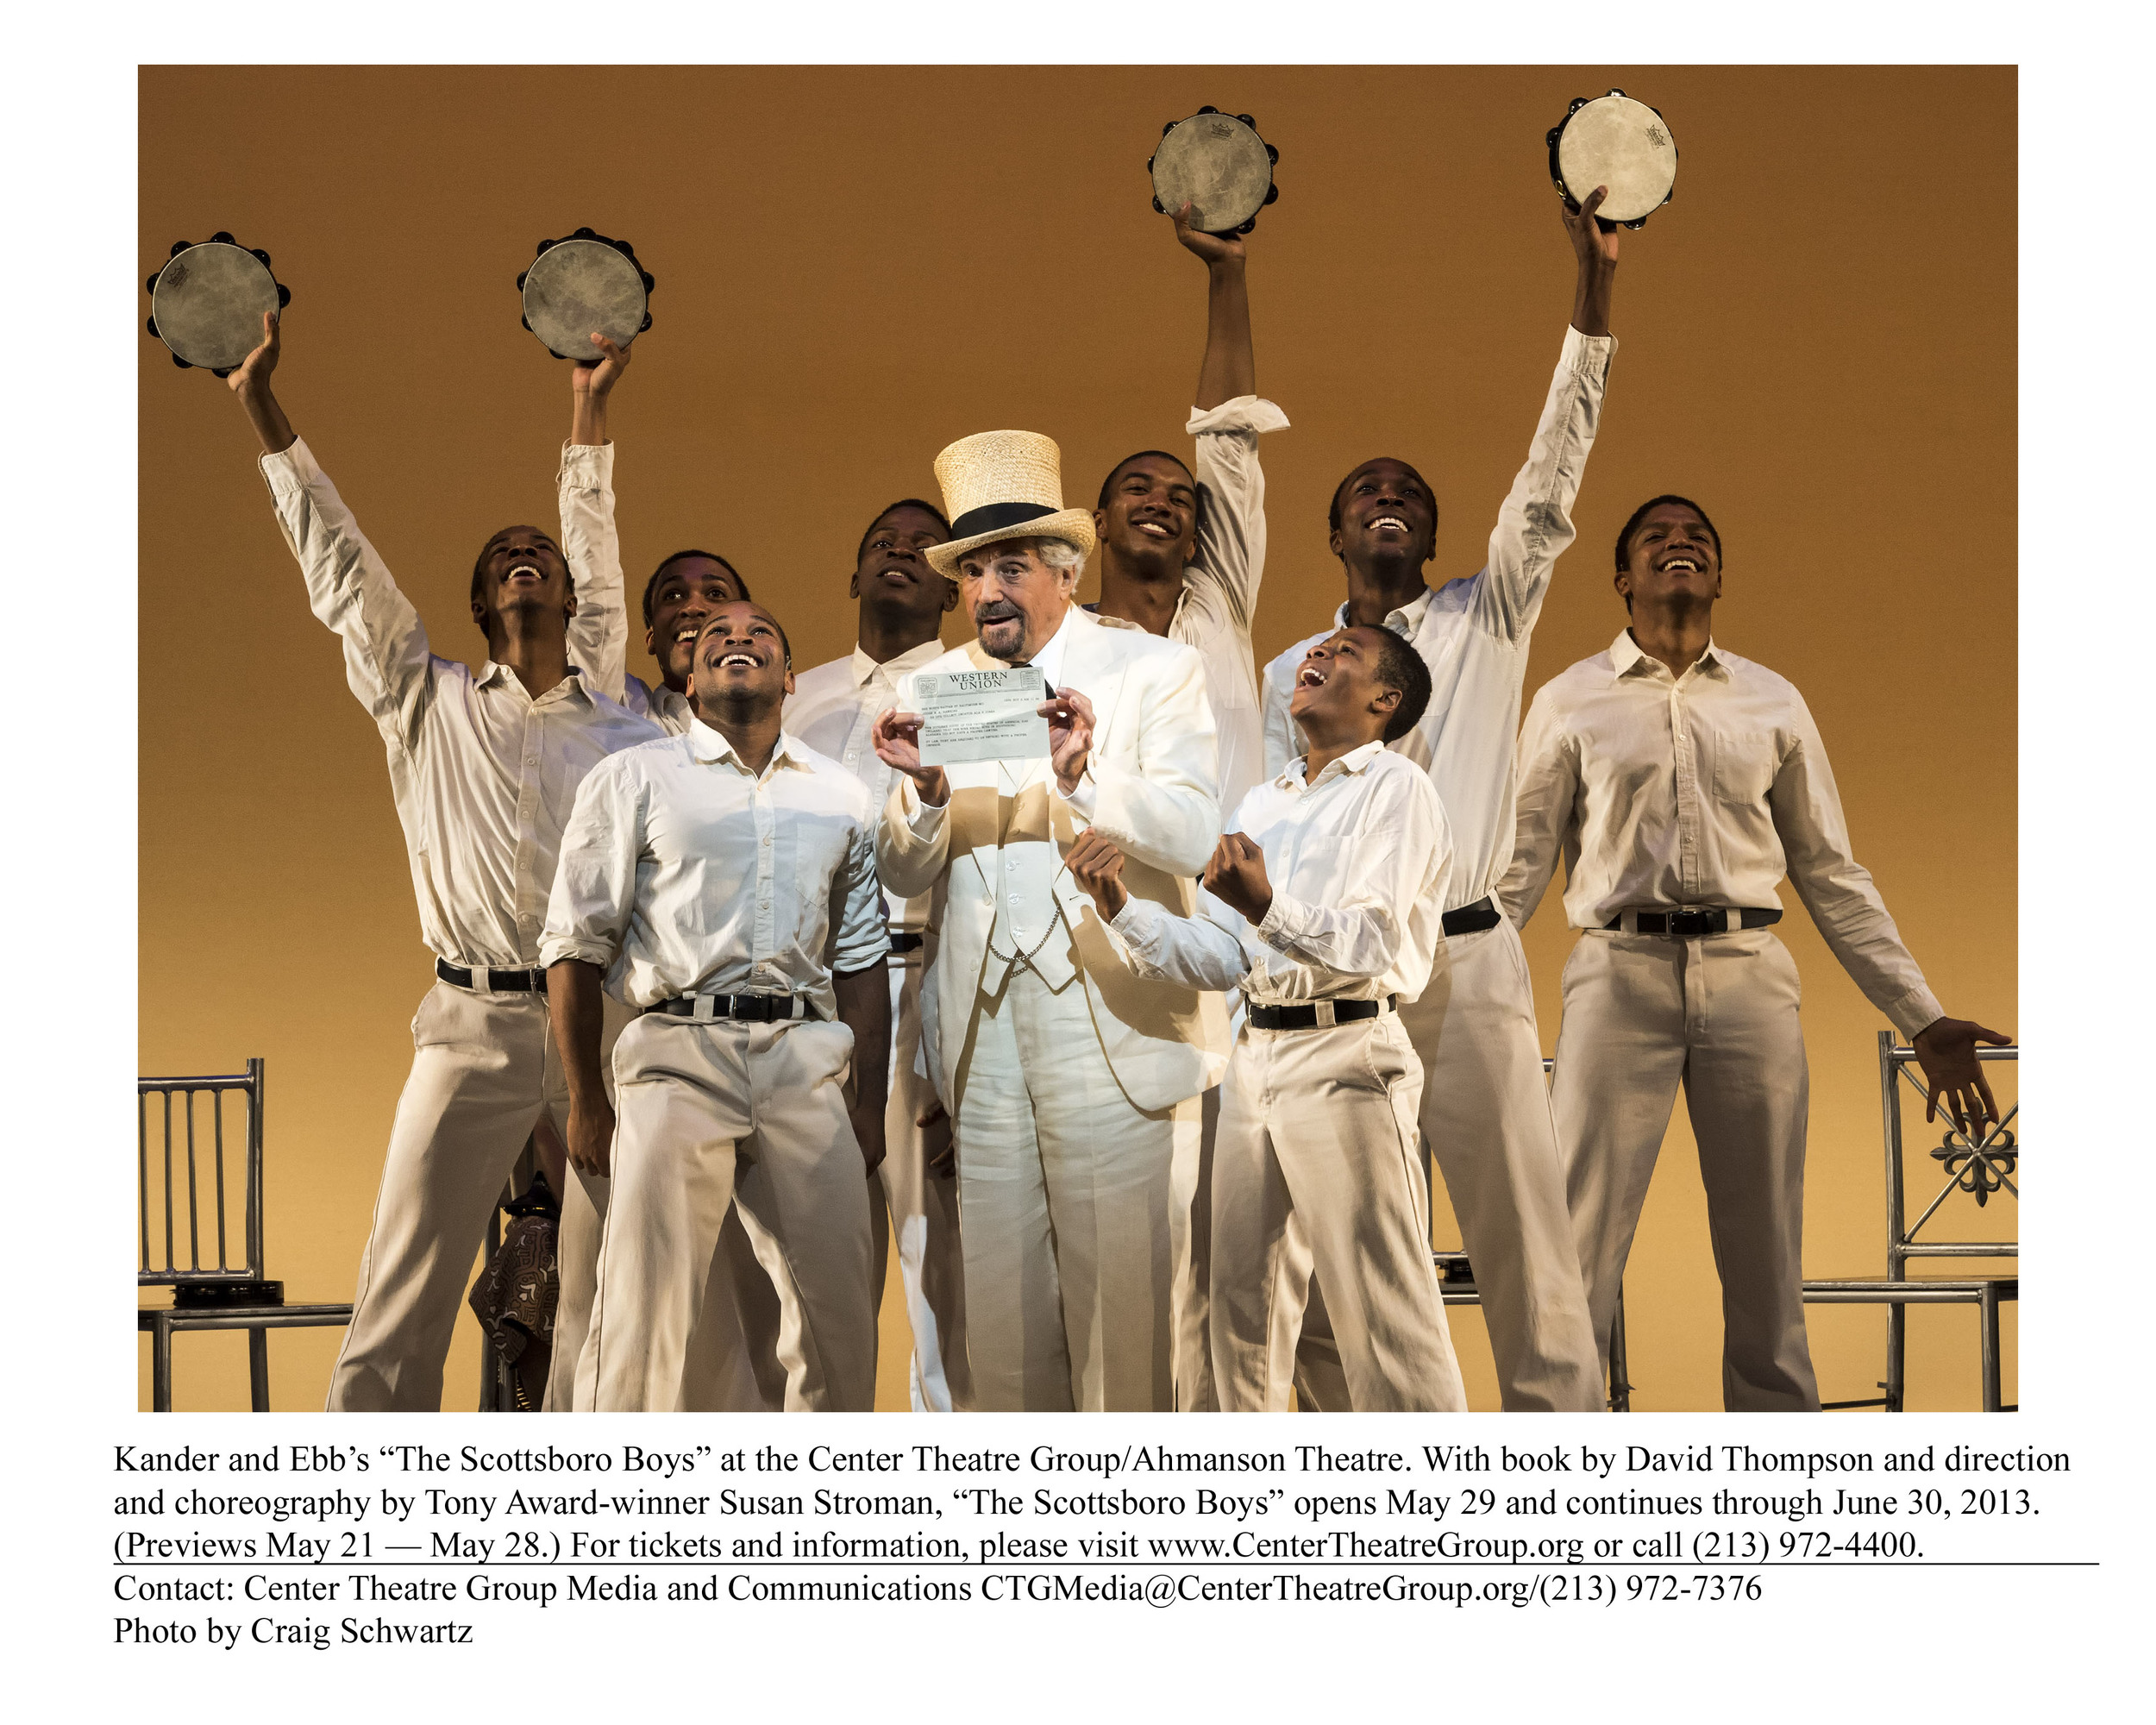 "Kander and Ebb's ""The Scottsboro Boys"" at the Center Theatre Group/Ahmanson Theatre. With book by David Thompson and direction and choreography by Tony Award-winner Susan Stroman, ""The Scottsboro Boys"" opens May 29 and continues through June 30, 2013. (Previews May 21 — May 28.) For tickets and information, please visit www.CenterTheatreGroup.org or call (213) 972- 4400. Contact: Center Theatre Group Media and Communications CTGMedia@CenterTheatreGroup.org/(213) 972-7376 Photo by Craig Schwartz"